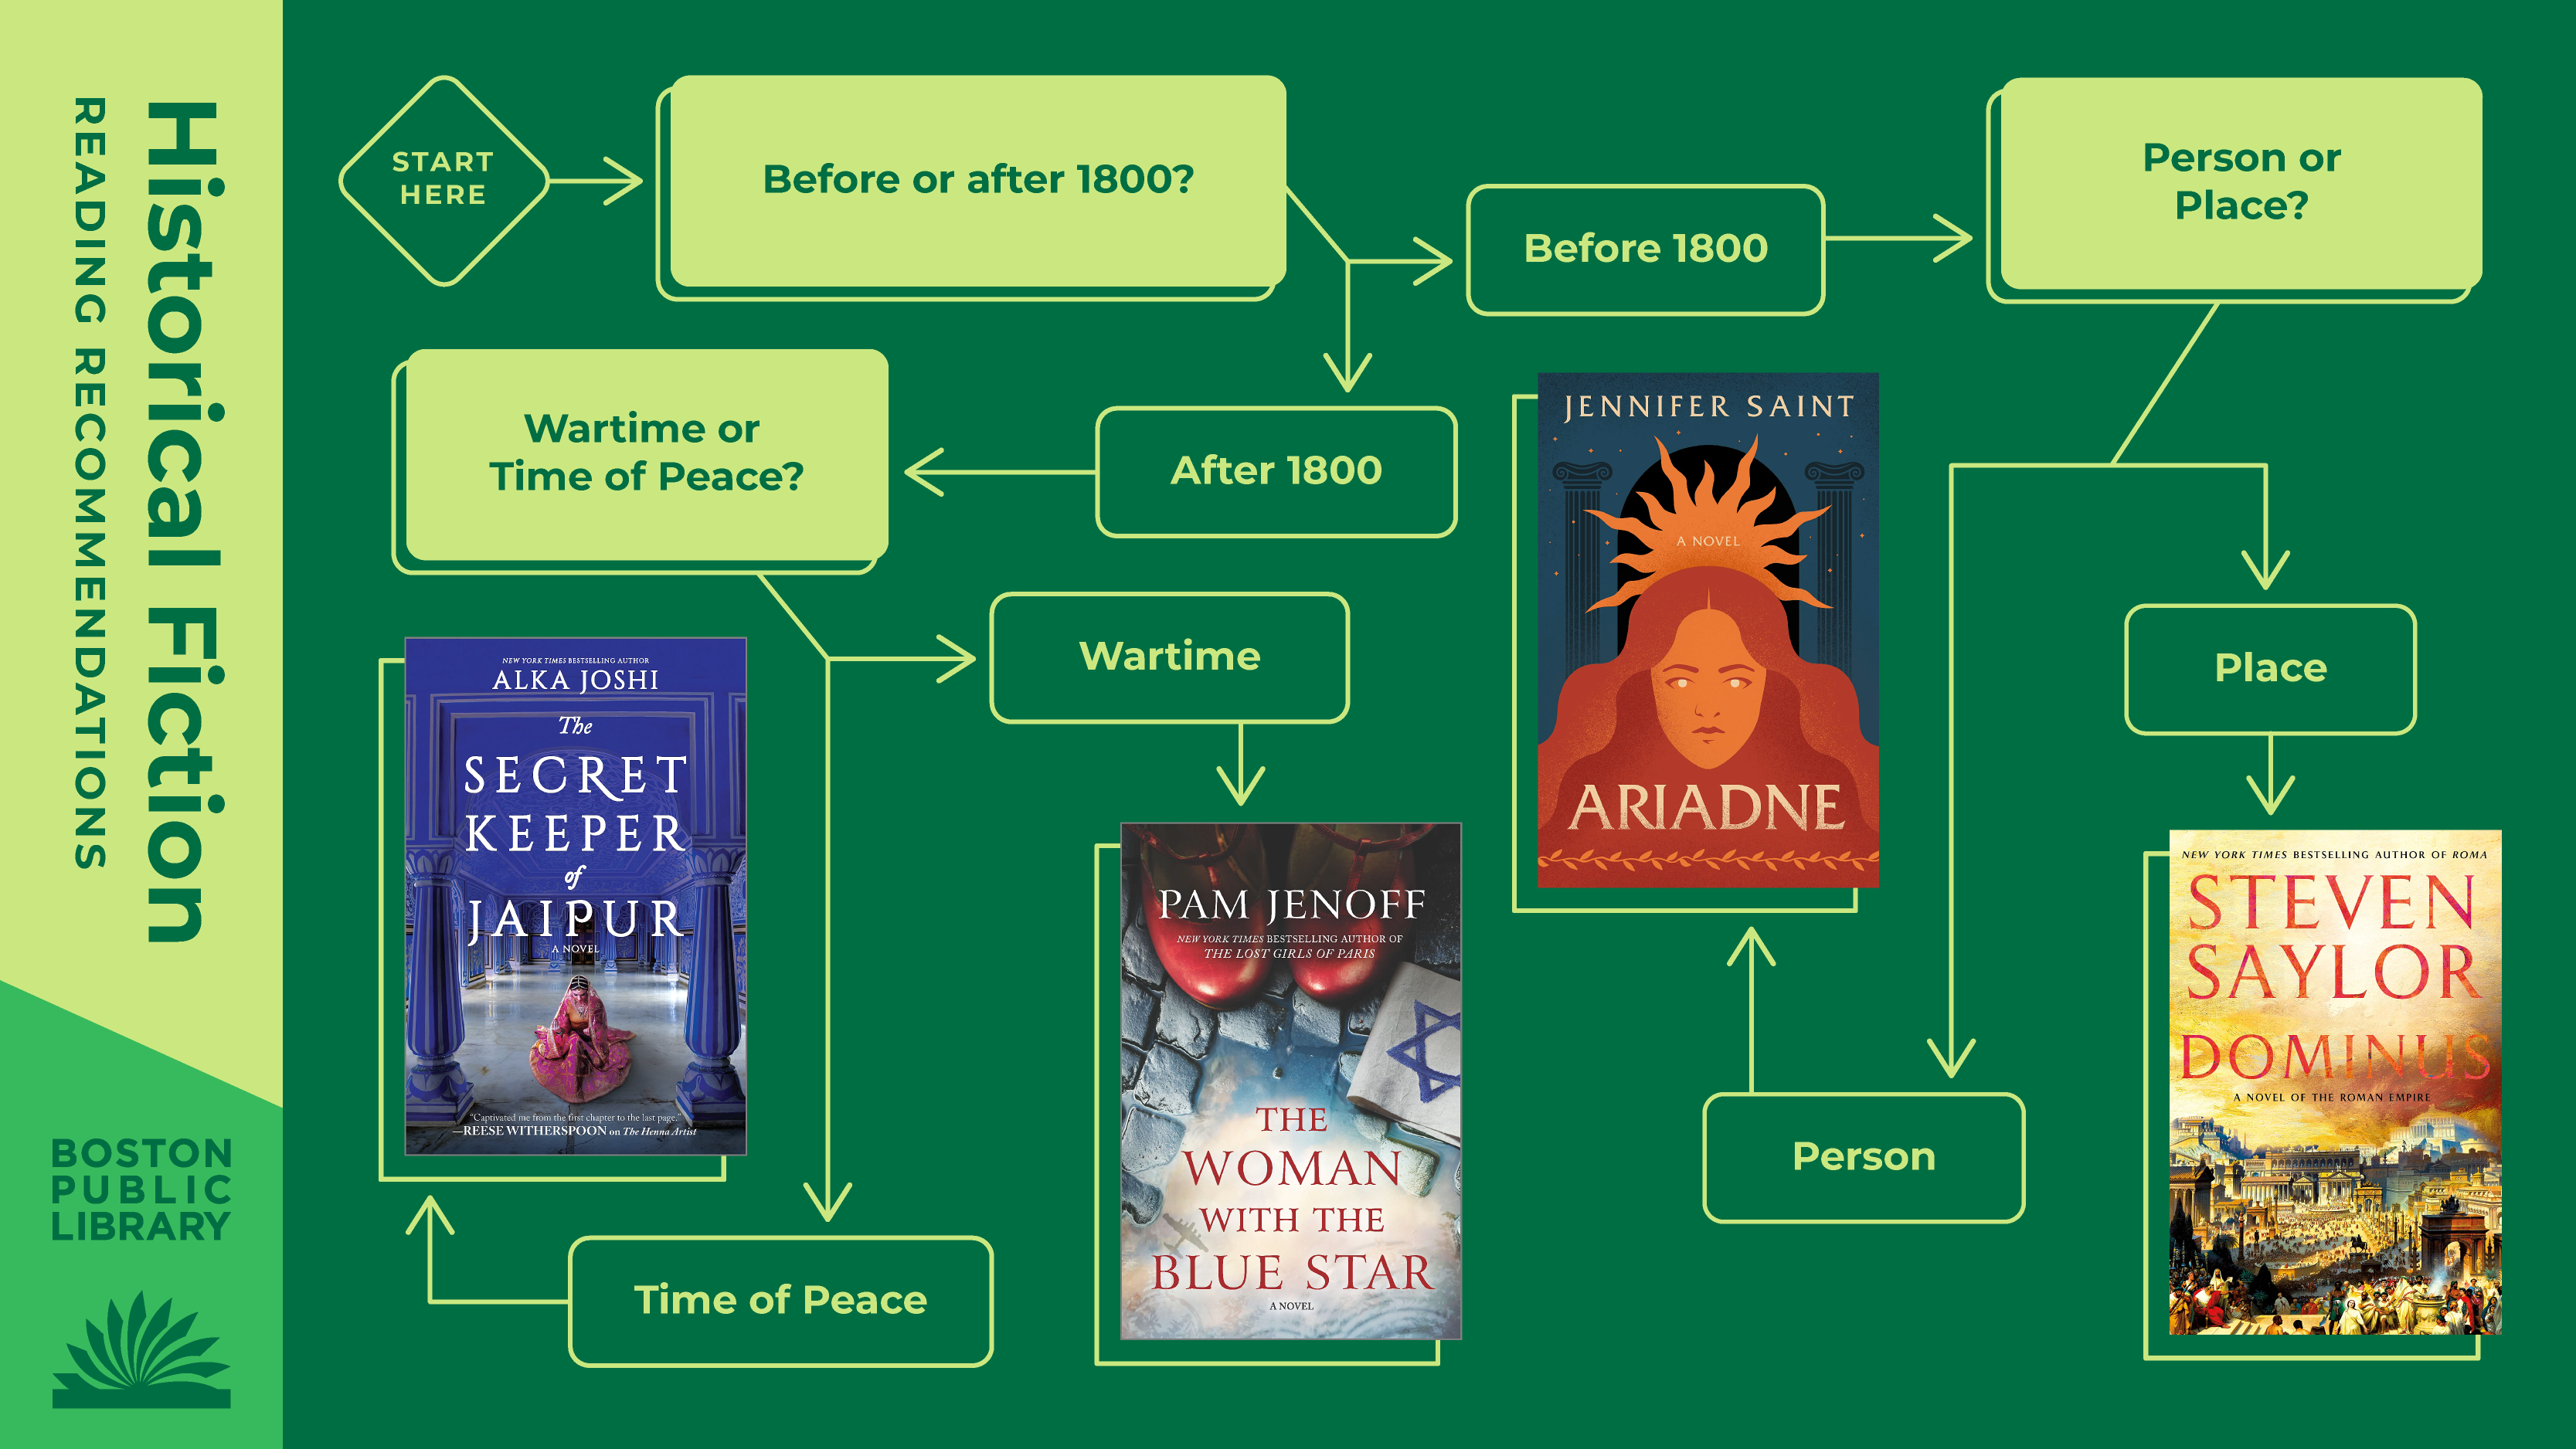 Historical Fiction Reading Recommendations   Before or after 1800? Before 1800 -> Person or Place? Person -> Ariadne by Jennifer Saint, Place -> Dominus by Steven Saylor   After 1800 -> Wartime or Time of Peace? Wartime -> The Woman with the Blue Star by Pam Jenoff, Time of Peace -> The Secret Keeper of Jaipur by Alka Joshi.